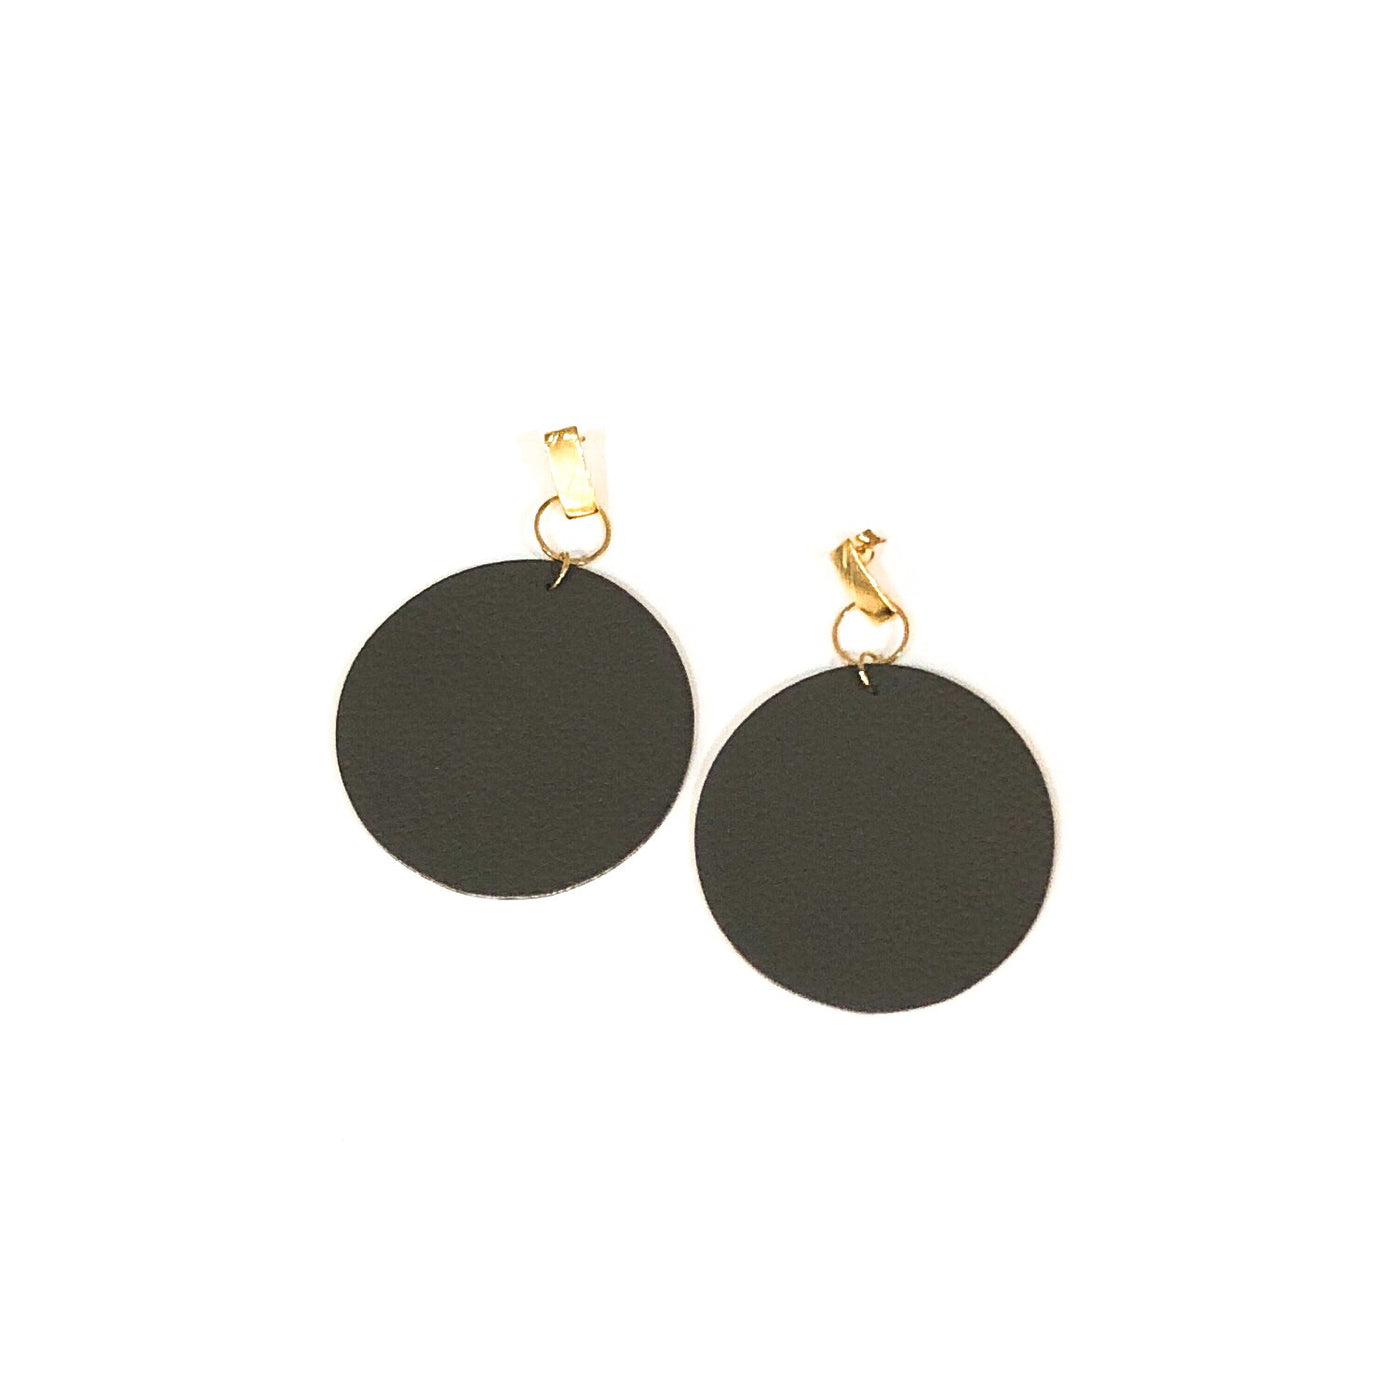 Leather Circle Earrings with Gold Stud